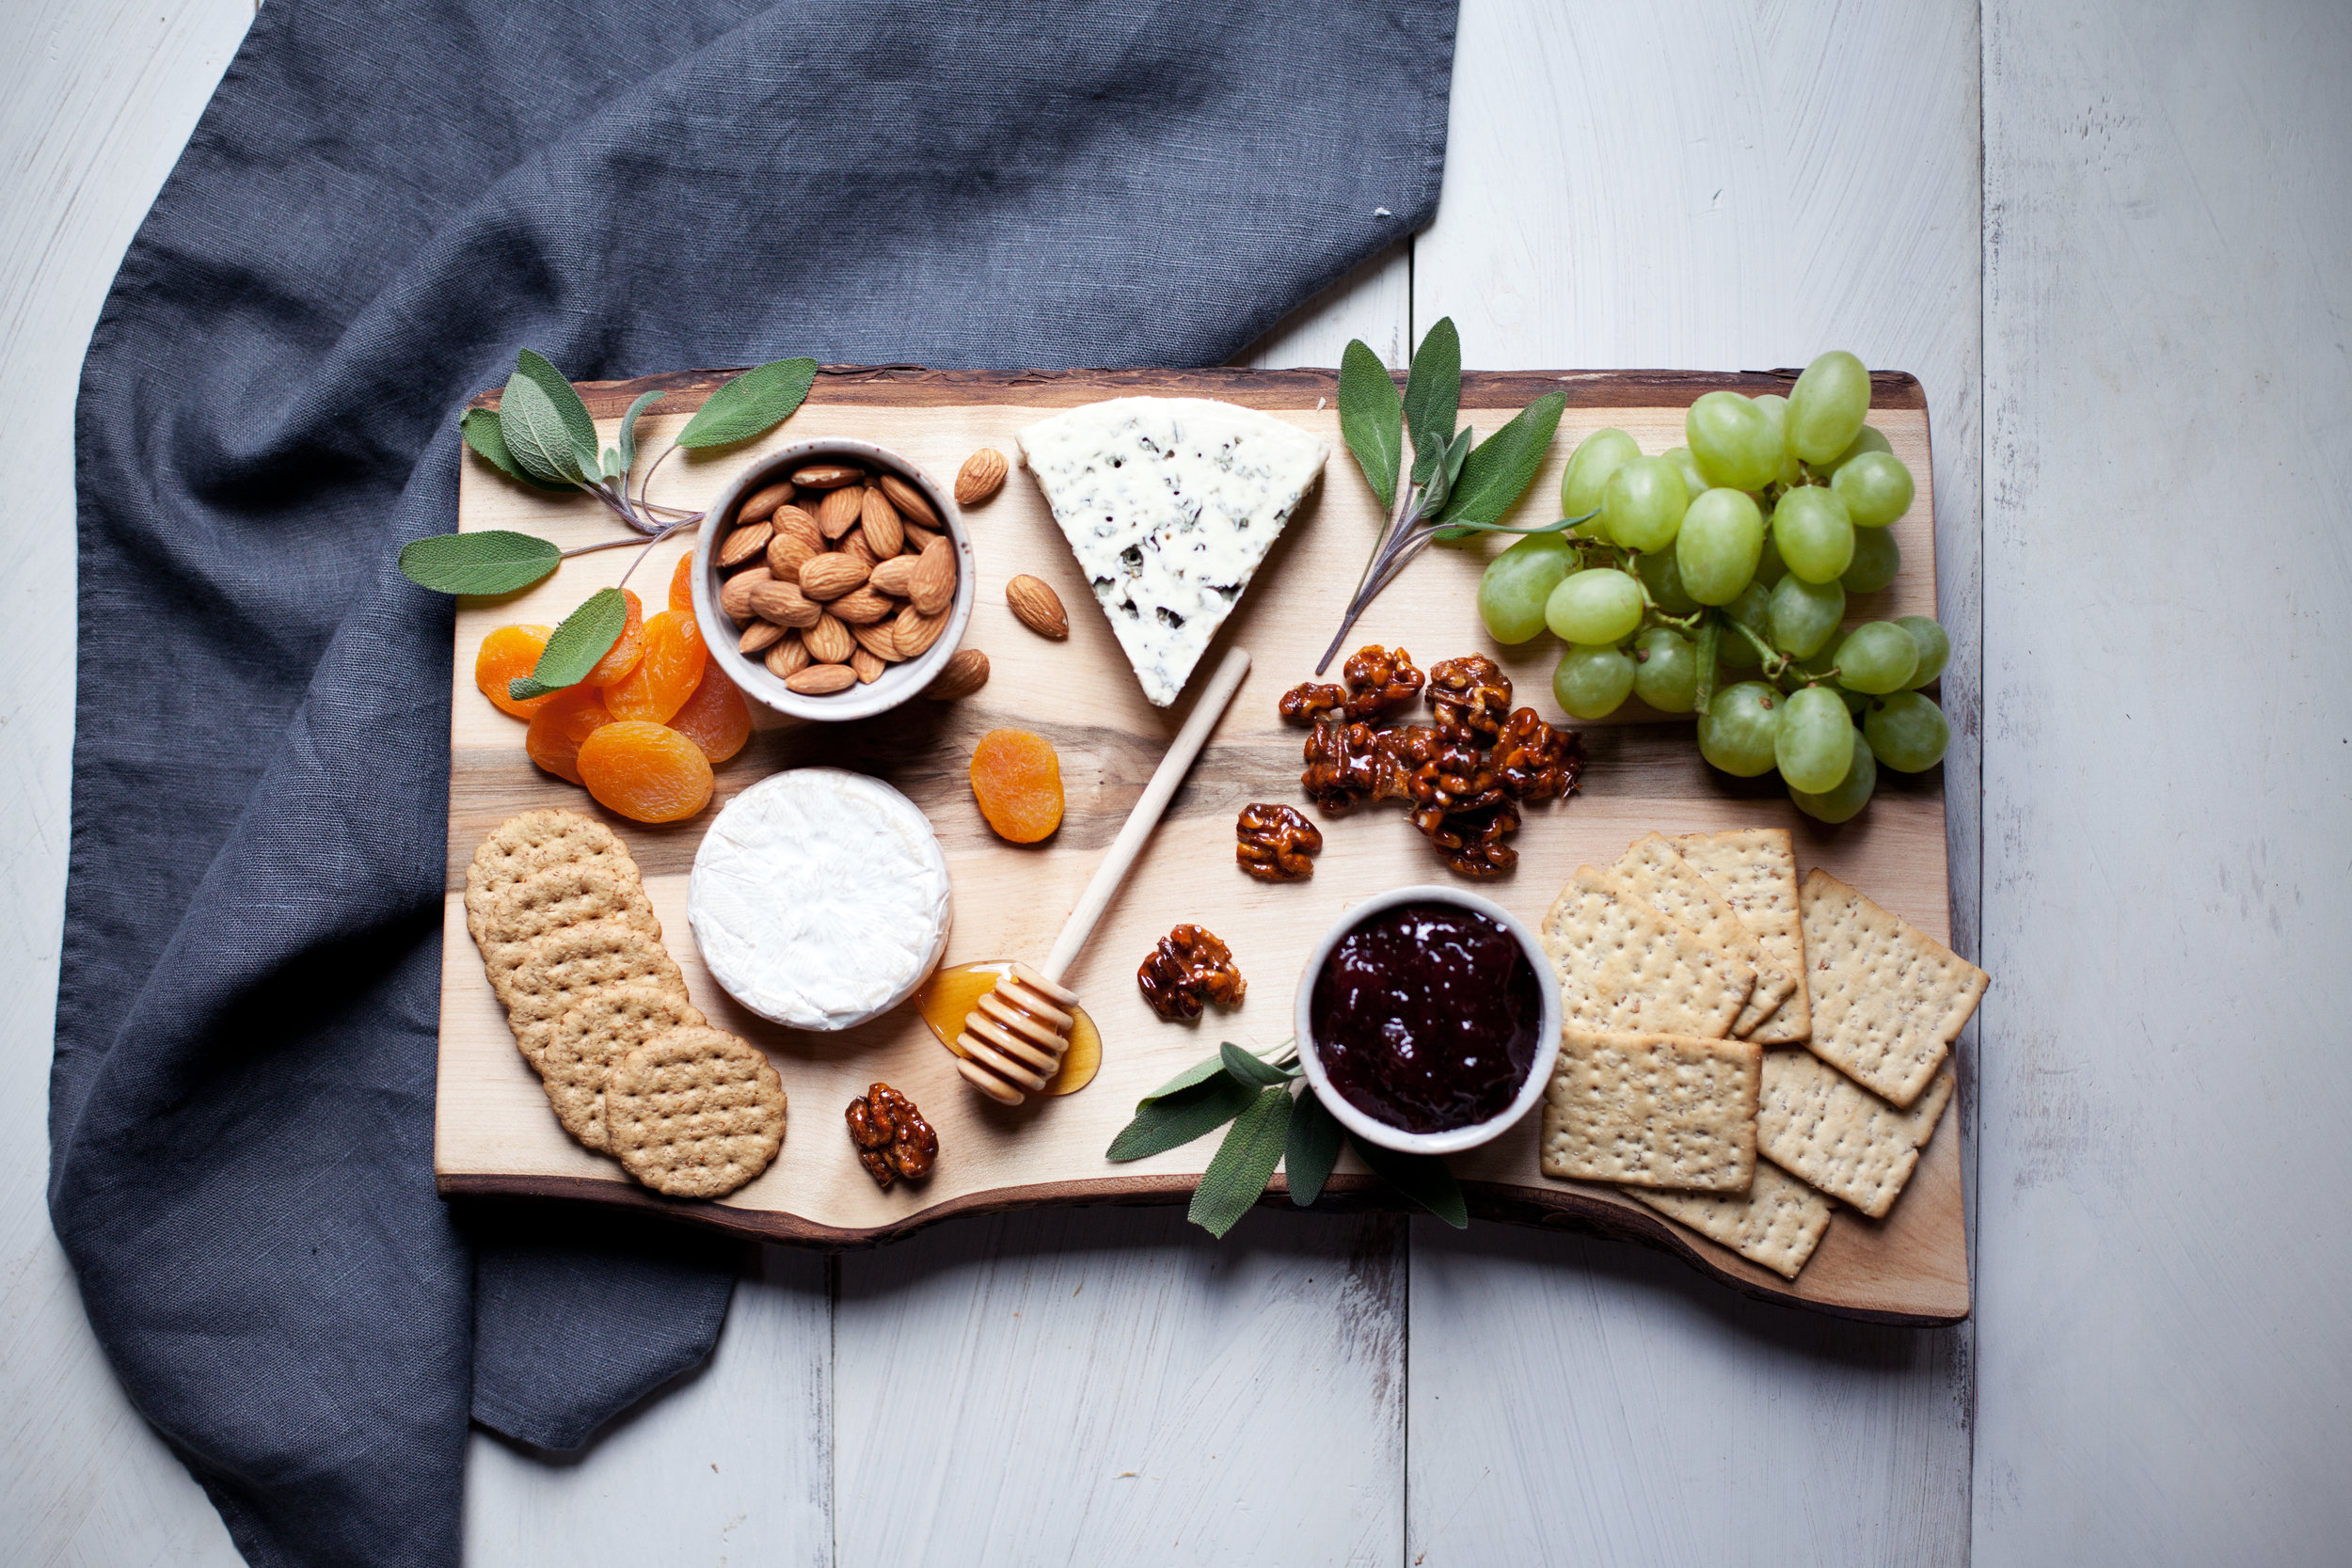 castello sweet cheese board ii.jpg